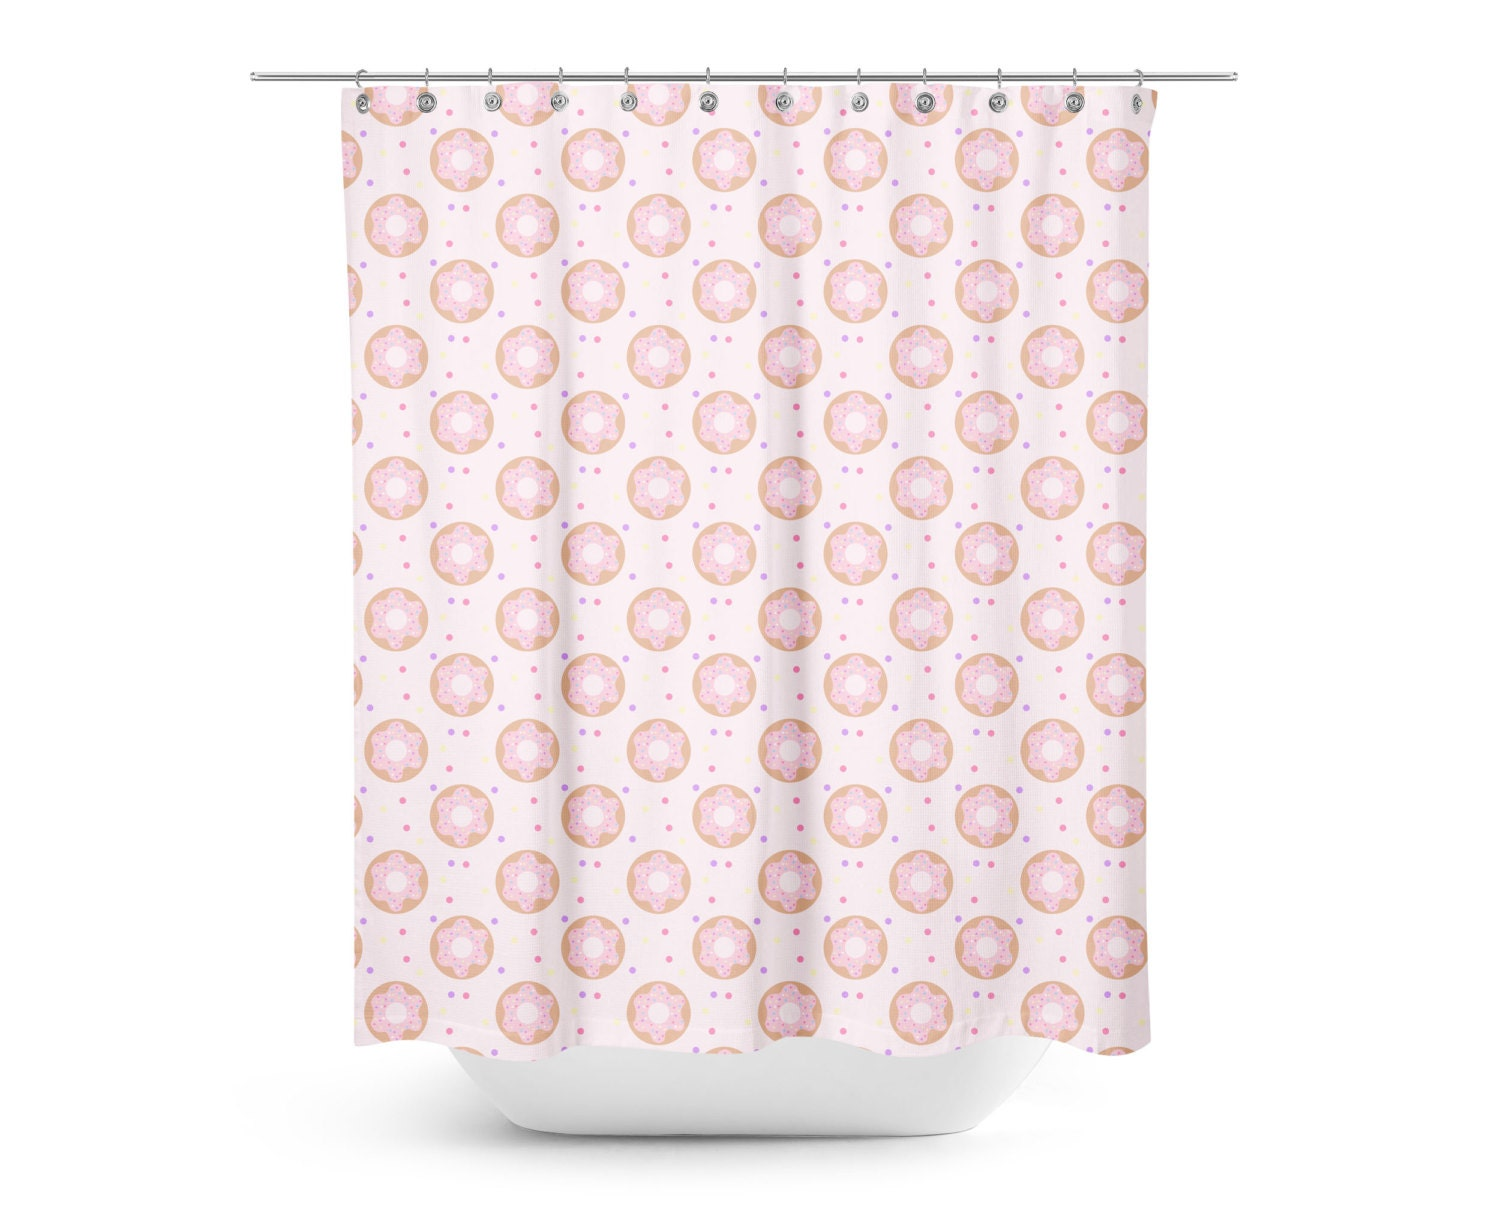 Minimal Pink Donuts Shower Curtain Kids Shower Curtain Mod